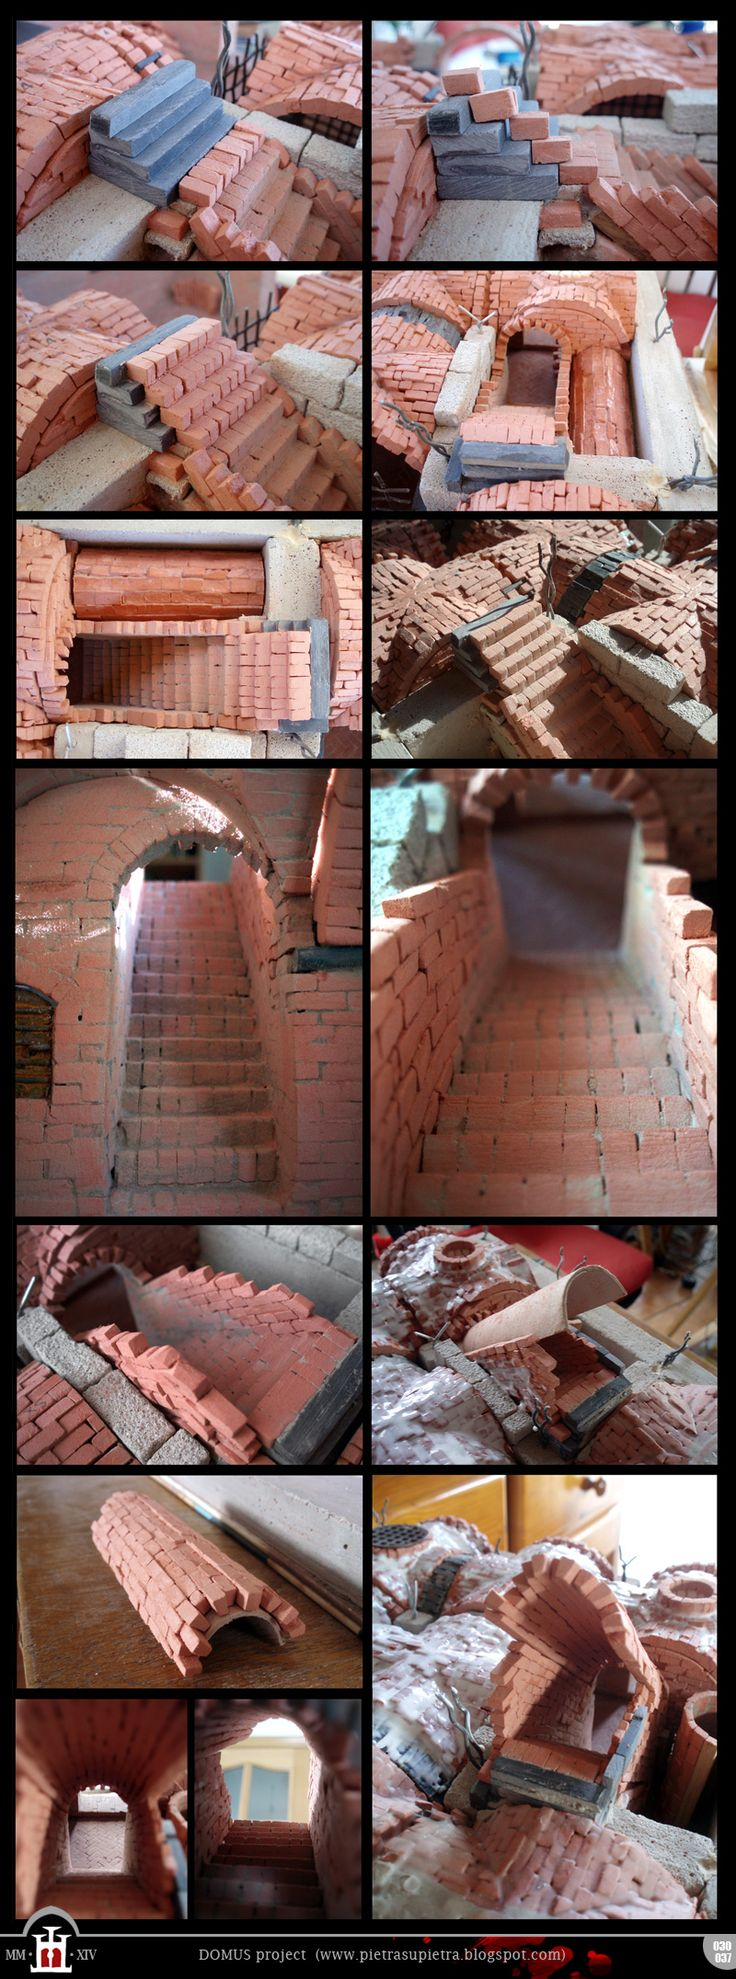 Domus project 030-037: Clay brick staircase (part II) http://pietrasupietra.blogspot.com/2012/07/construction-30-brick-staircase-part-2.html - http://pietrasupietra.blogspot.com/2012/12/construction-37-brick-staircase-part-3.html  The Domus project is the construction in scale 1:50 of an imaginary medieval palace. It's made of clay, stones, slate, wood and other construction materials in the style of rich genoese buildings from the middle of XIV century.